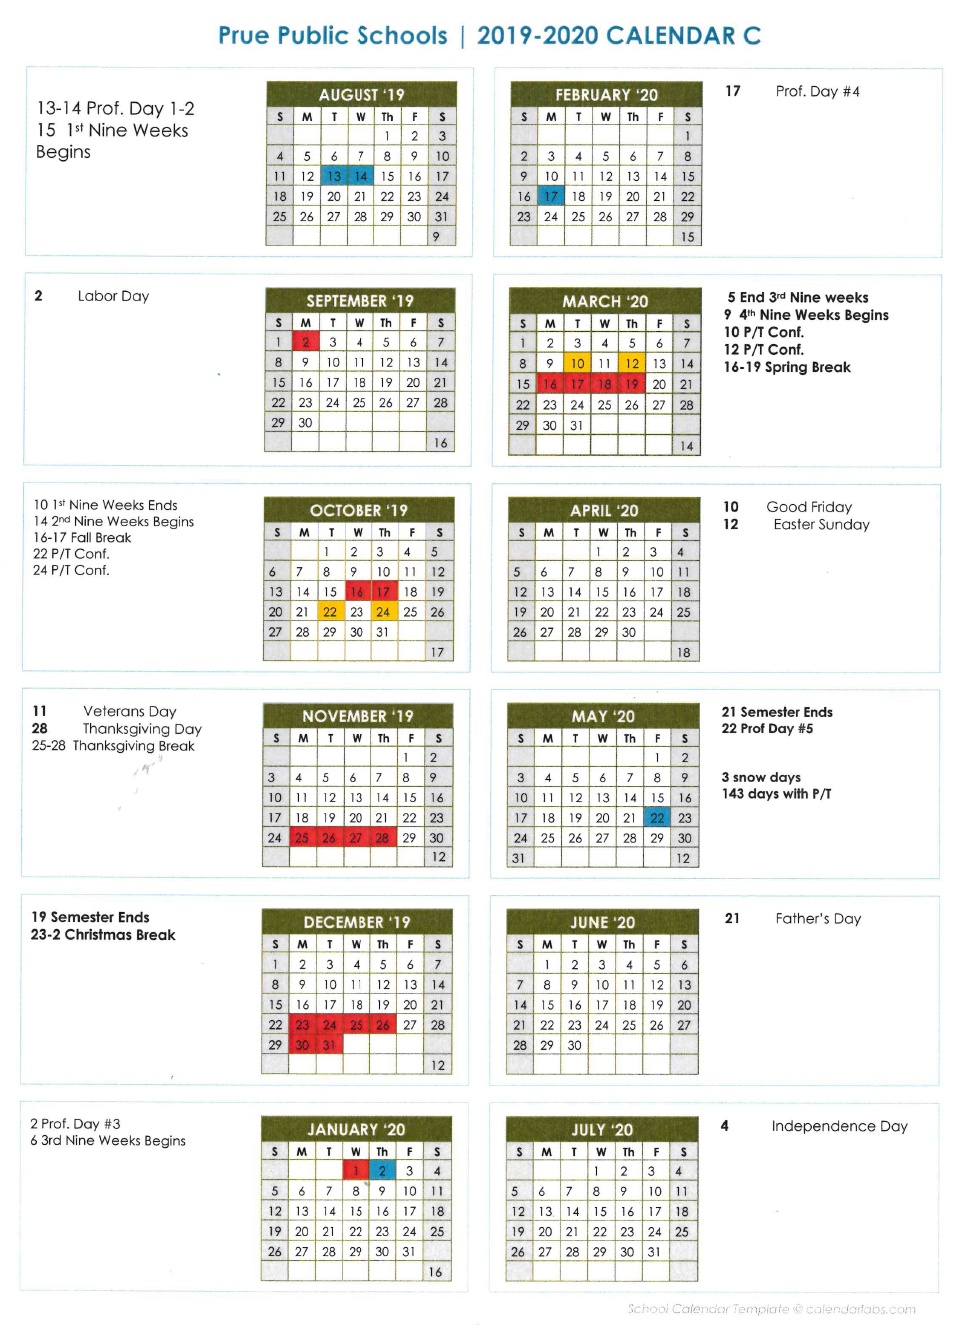 School Calendar – About Us – Prue Public Schools Regarding Broken Arrow Public Schools Calendar